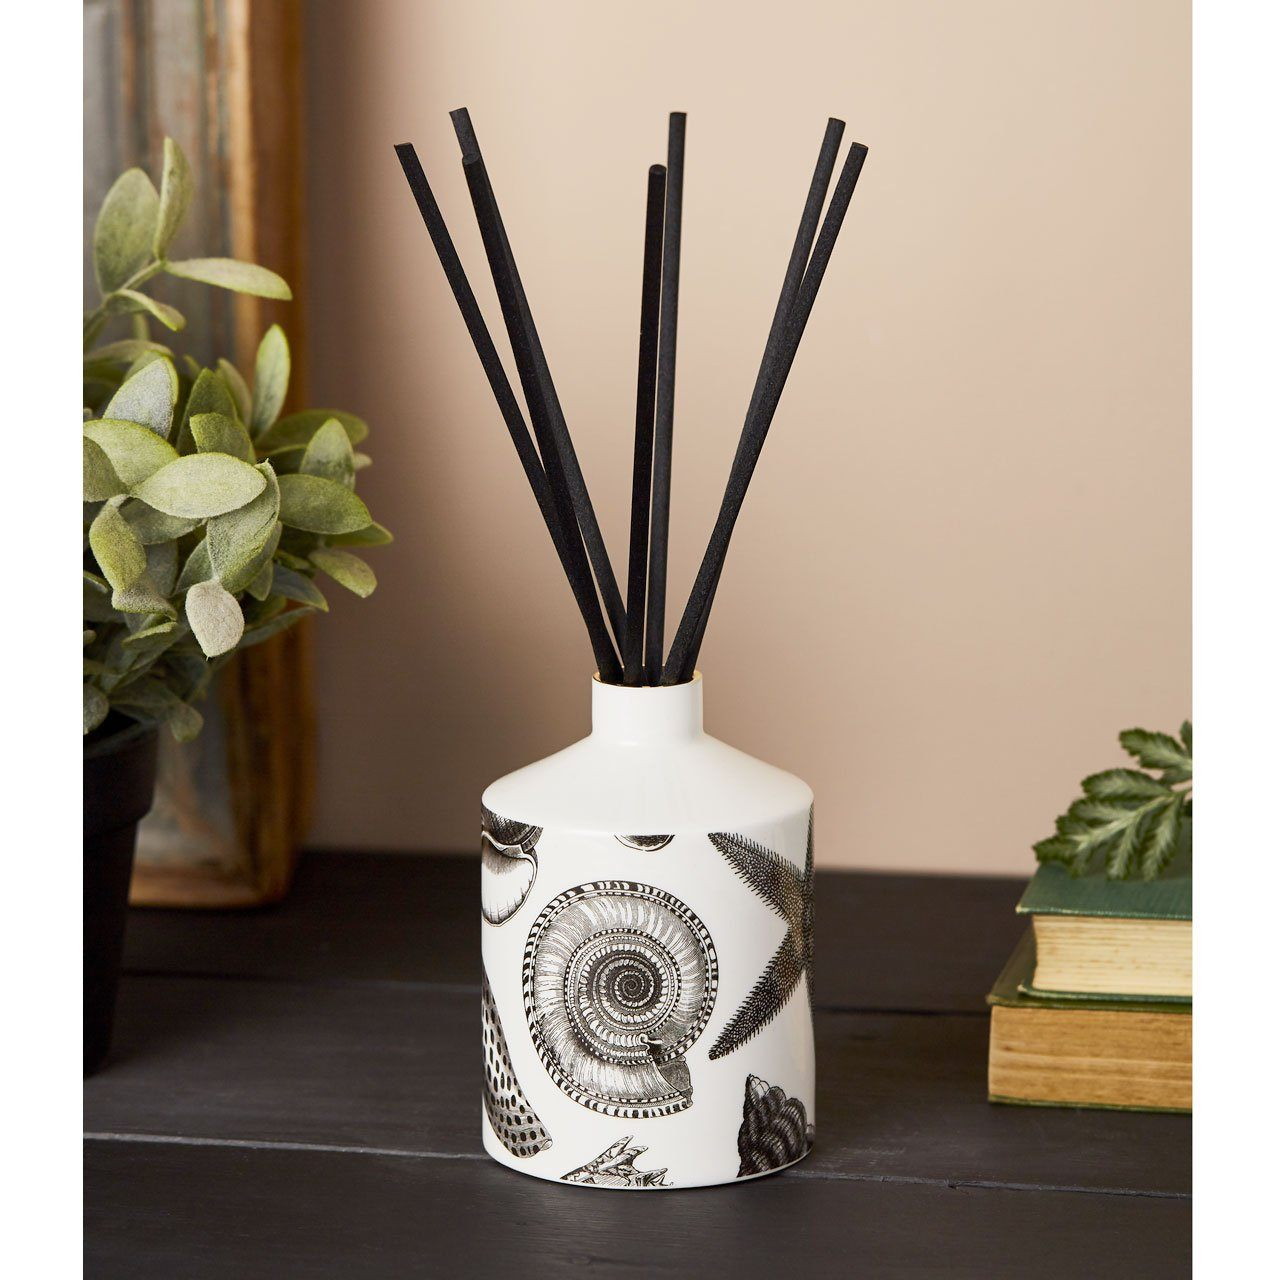 The Seashore Ceramic Diffuser